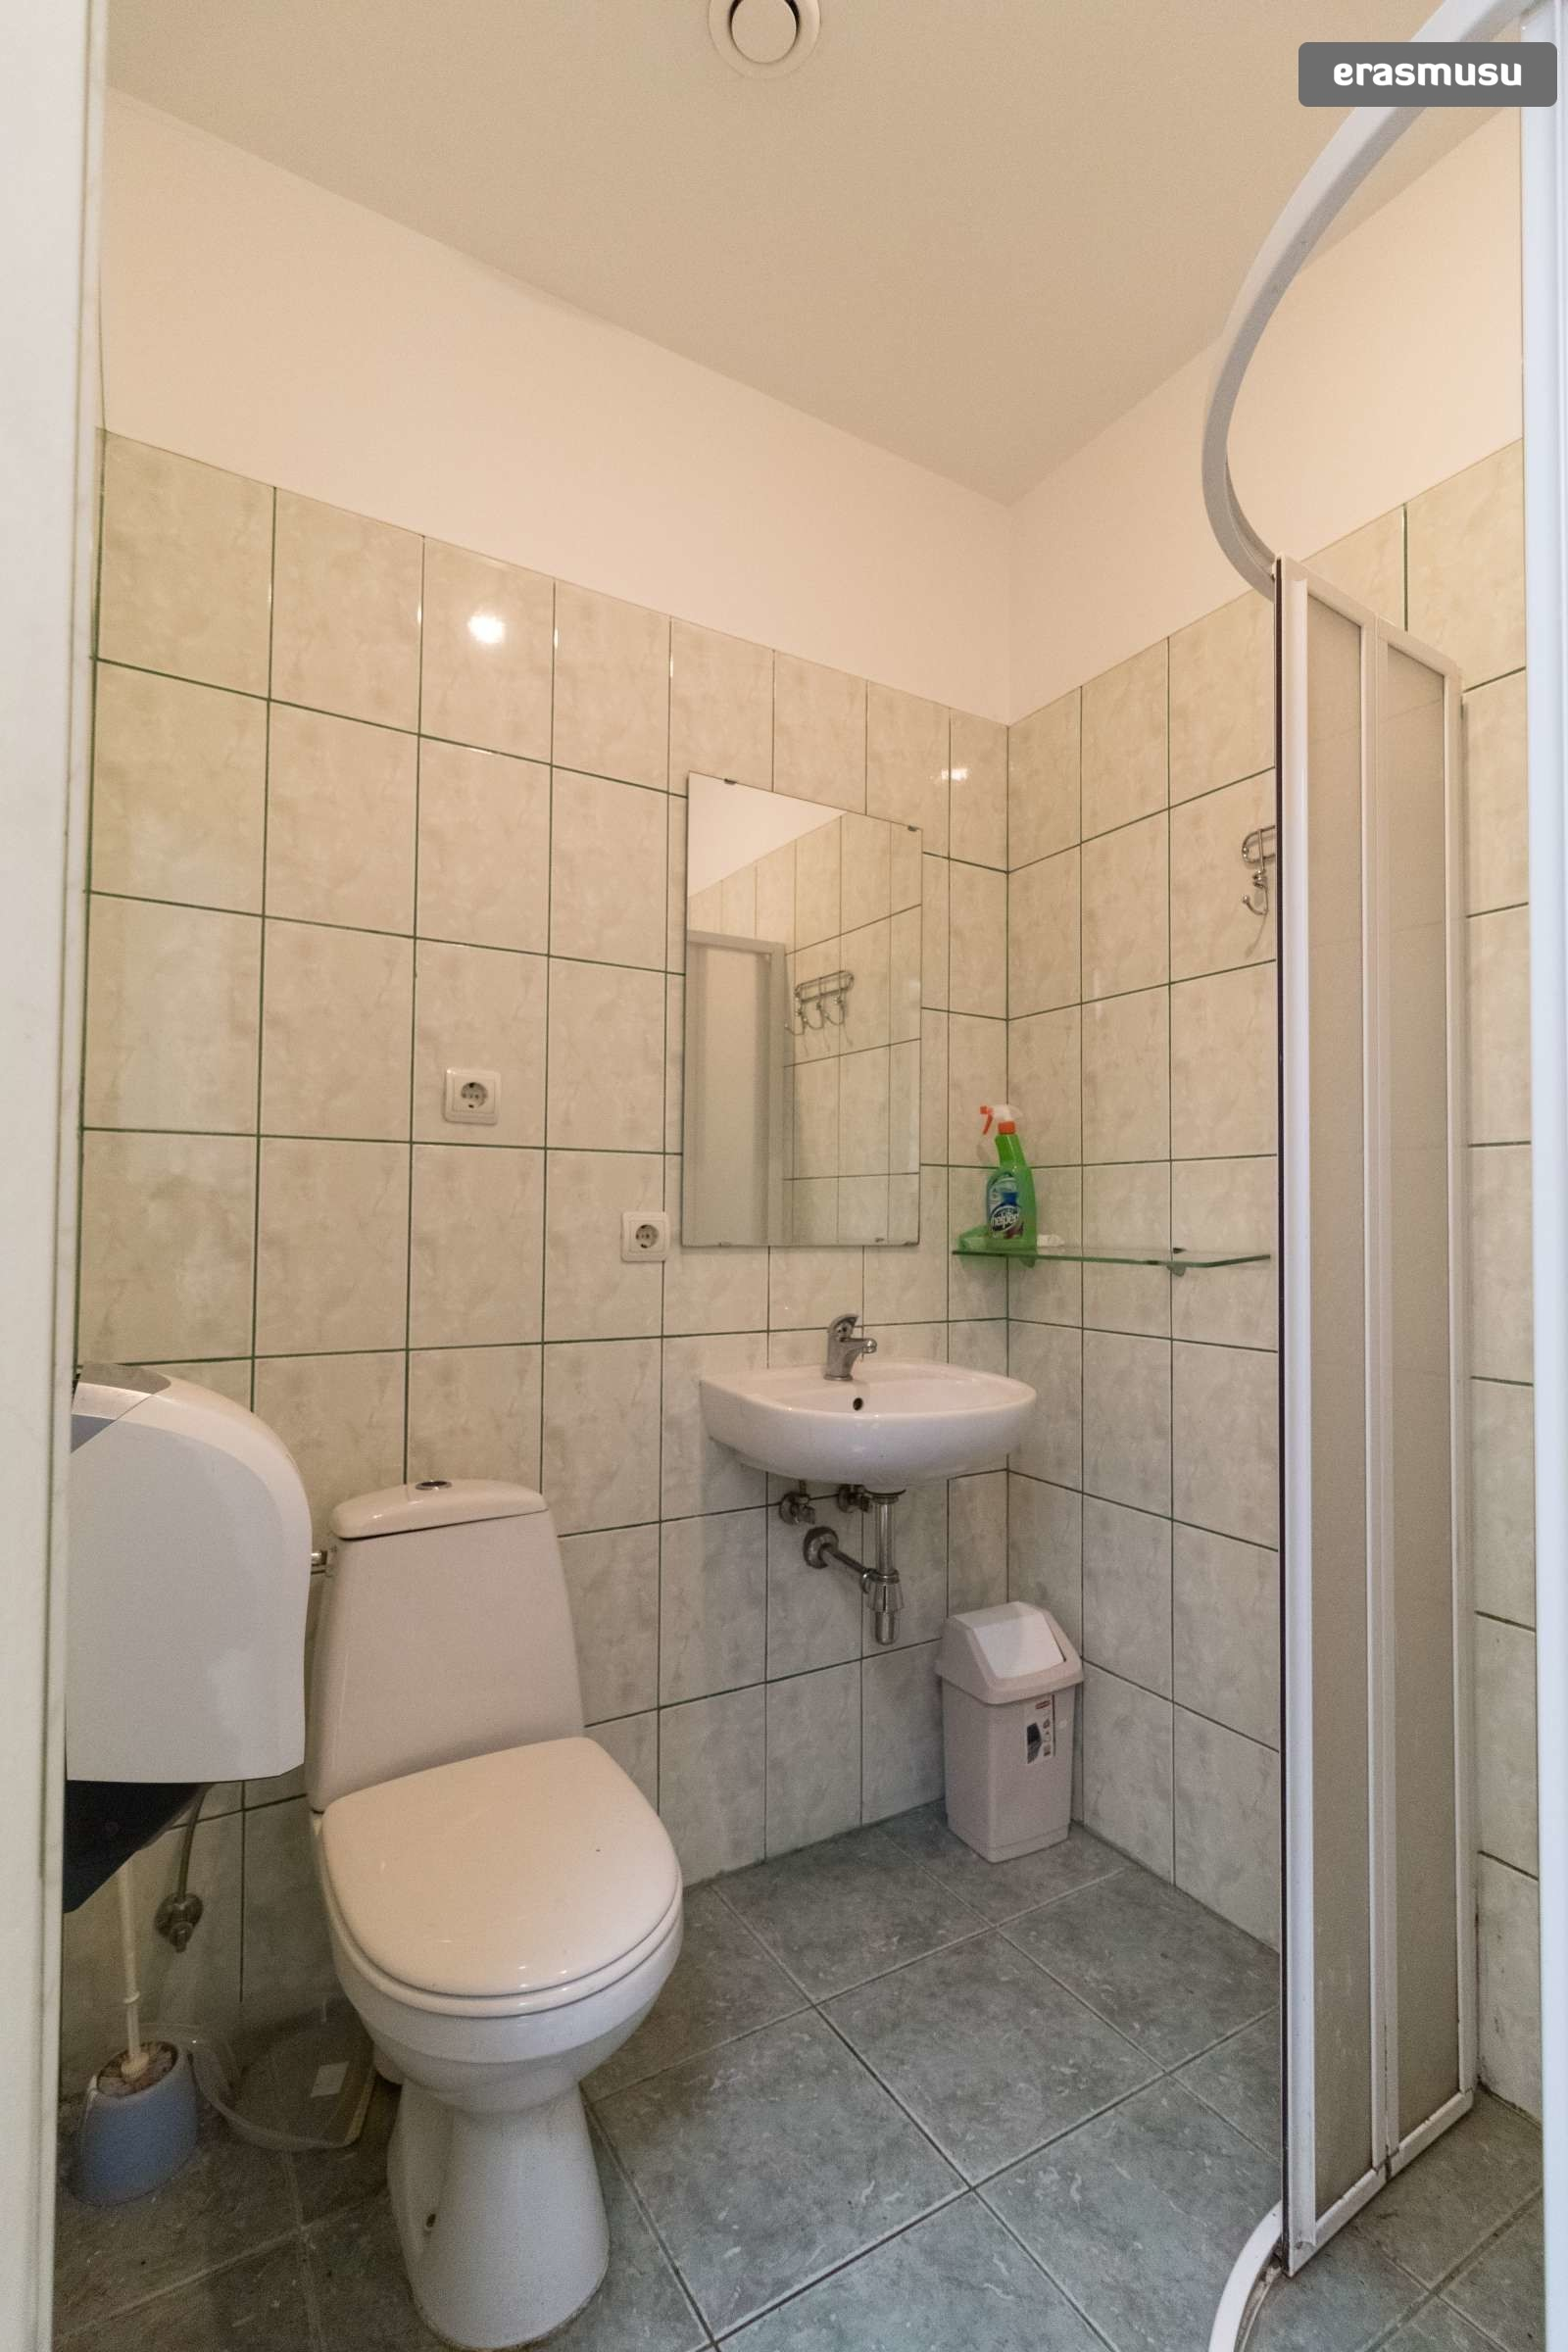 studio-apartment-rent-close-kobes-darzs-park-agenskalns-ff89180a